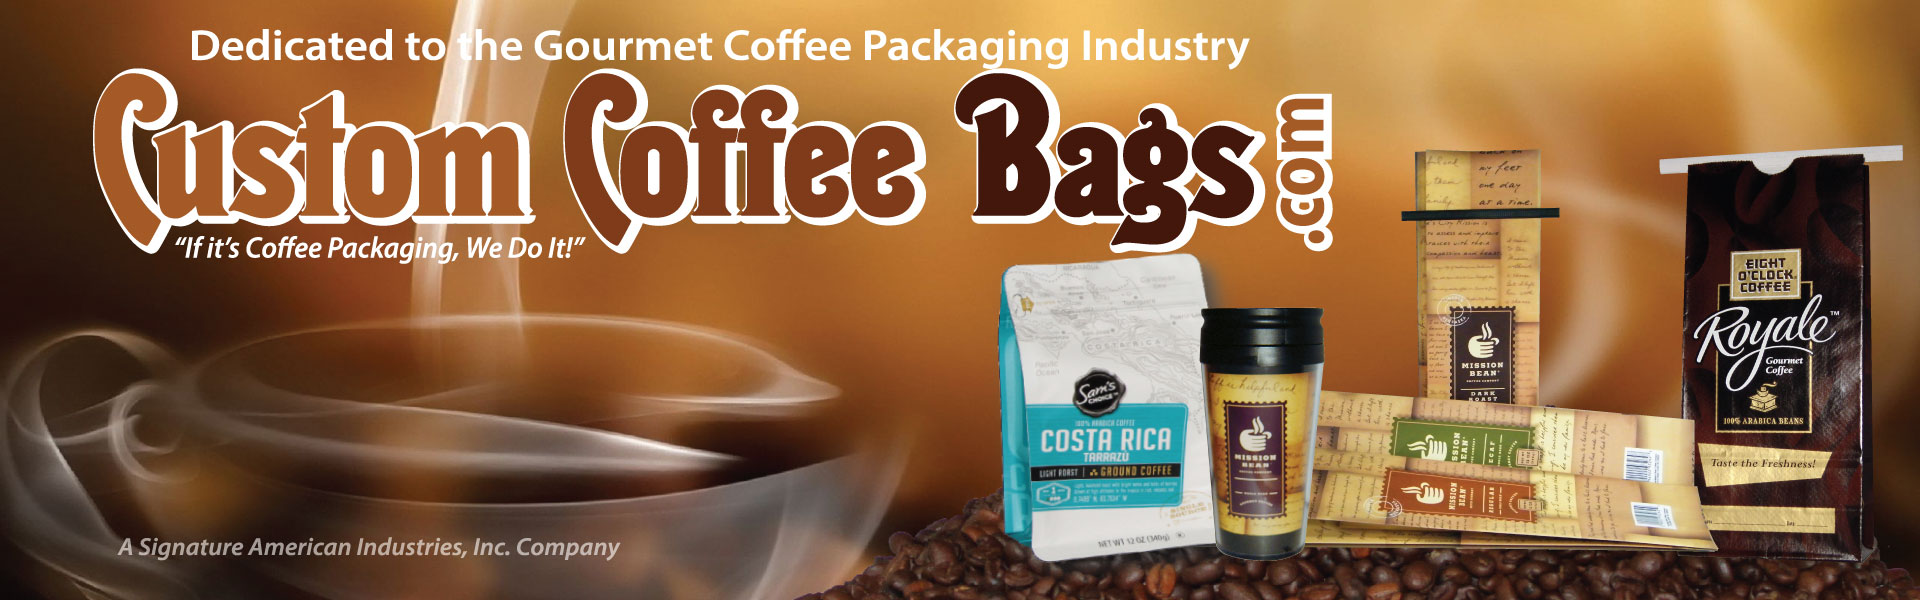 CustomCoffeeBags.com Header Img